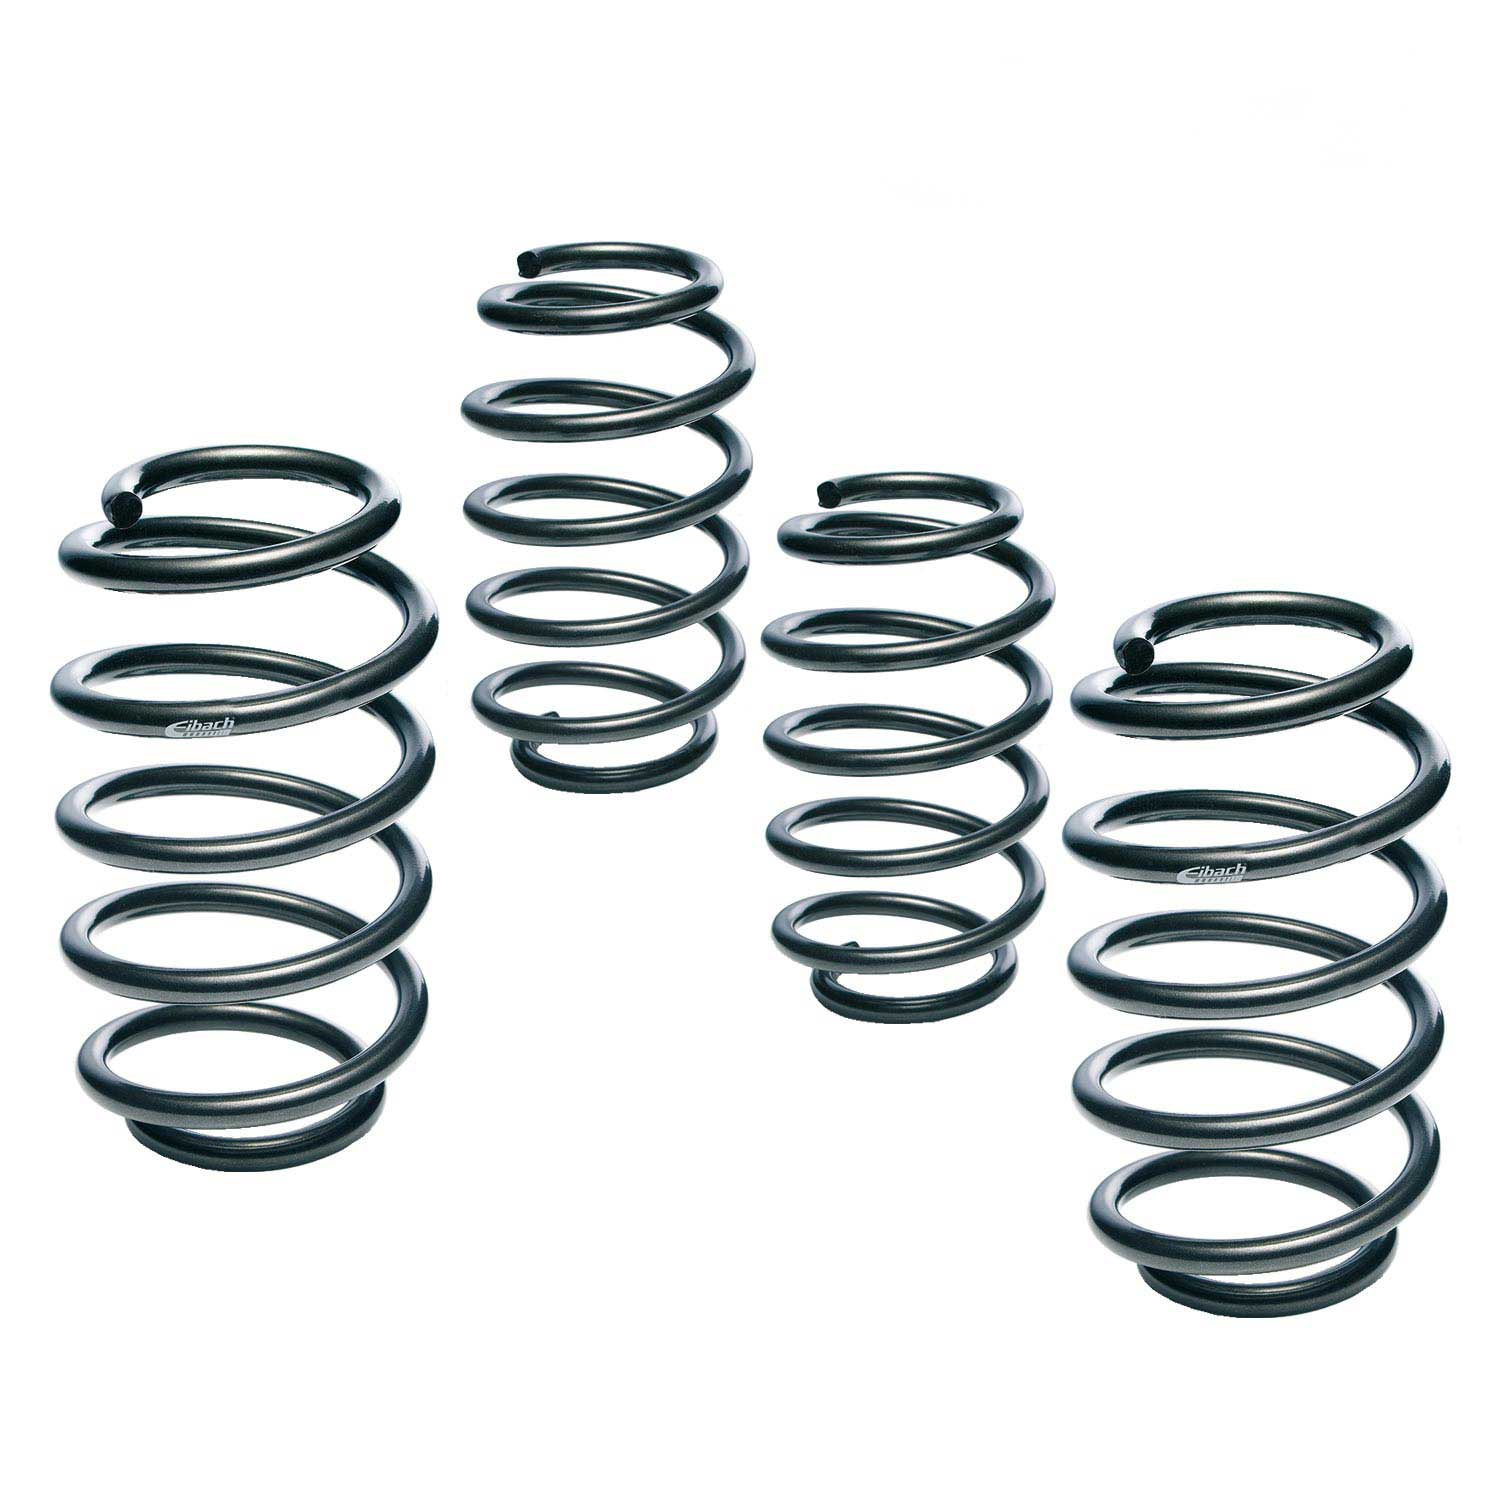 Eibach Pro-Kit Lowering Springs  /30mm E10-55-021-03-22 for MAZDA Cx-5